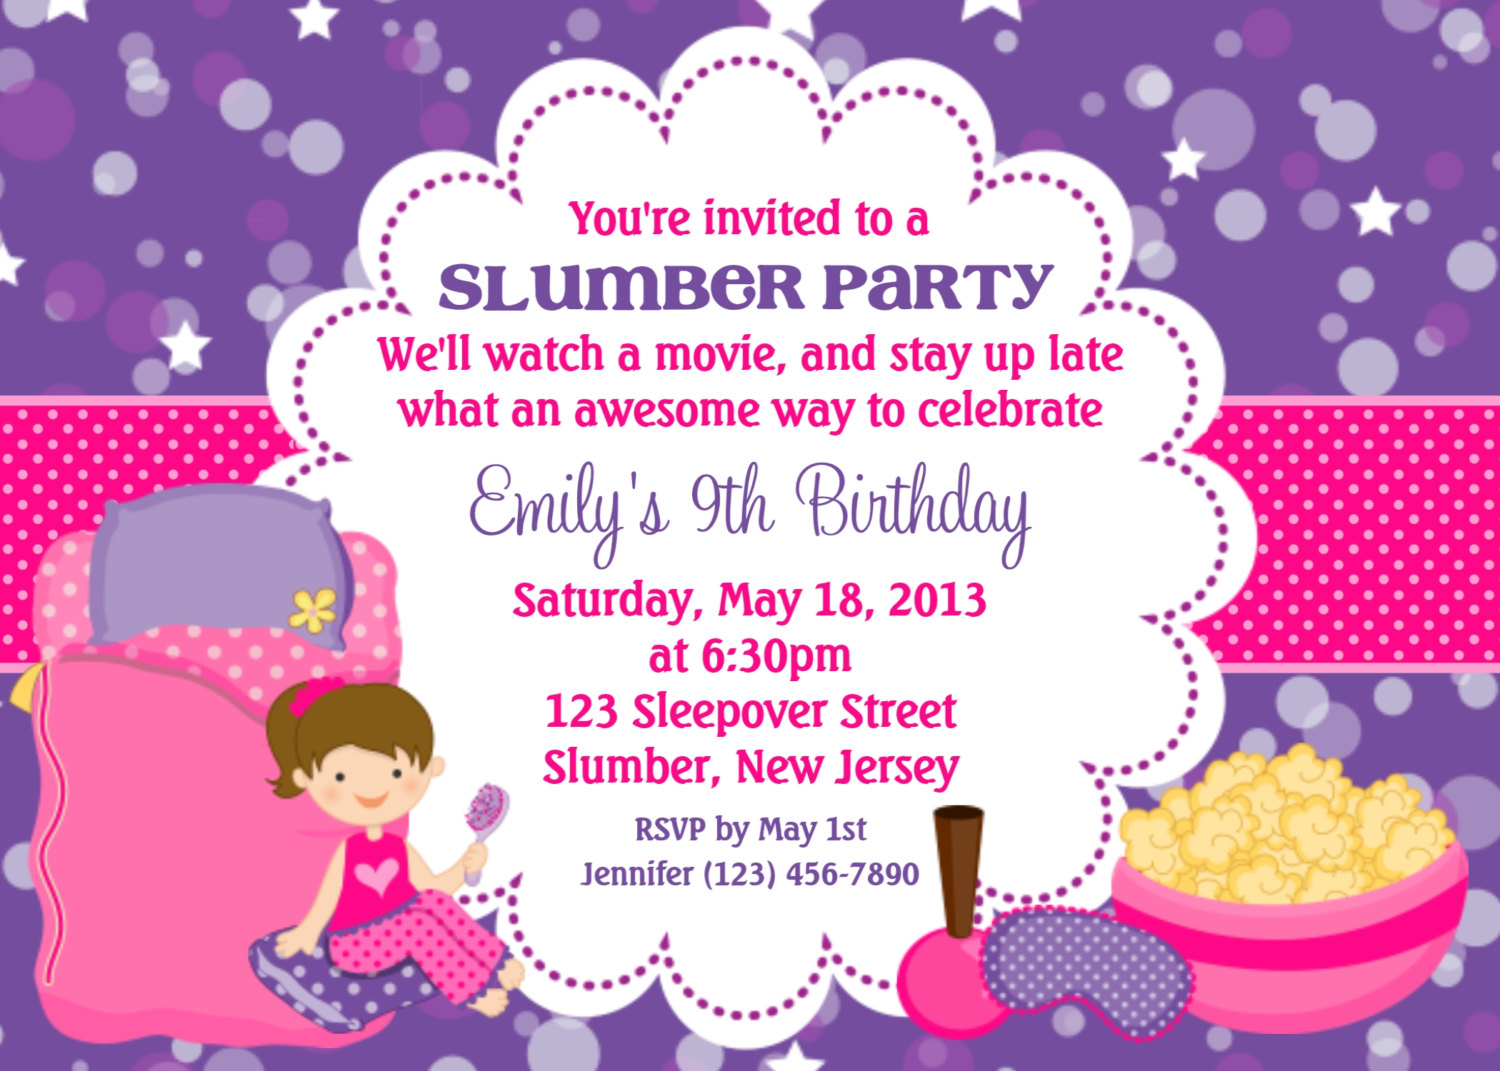 birthday party invitation card design ; invitation-for-birthday-party-quotes-With-creativity-erstaunlich-perfectly-design-Birthday-Invitations-interesting-3